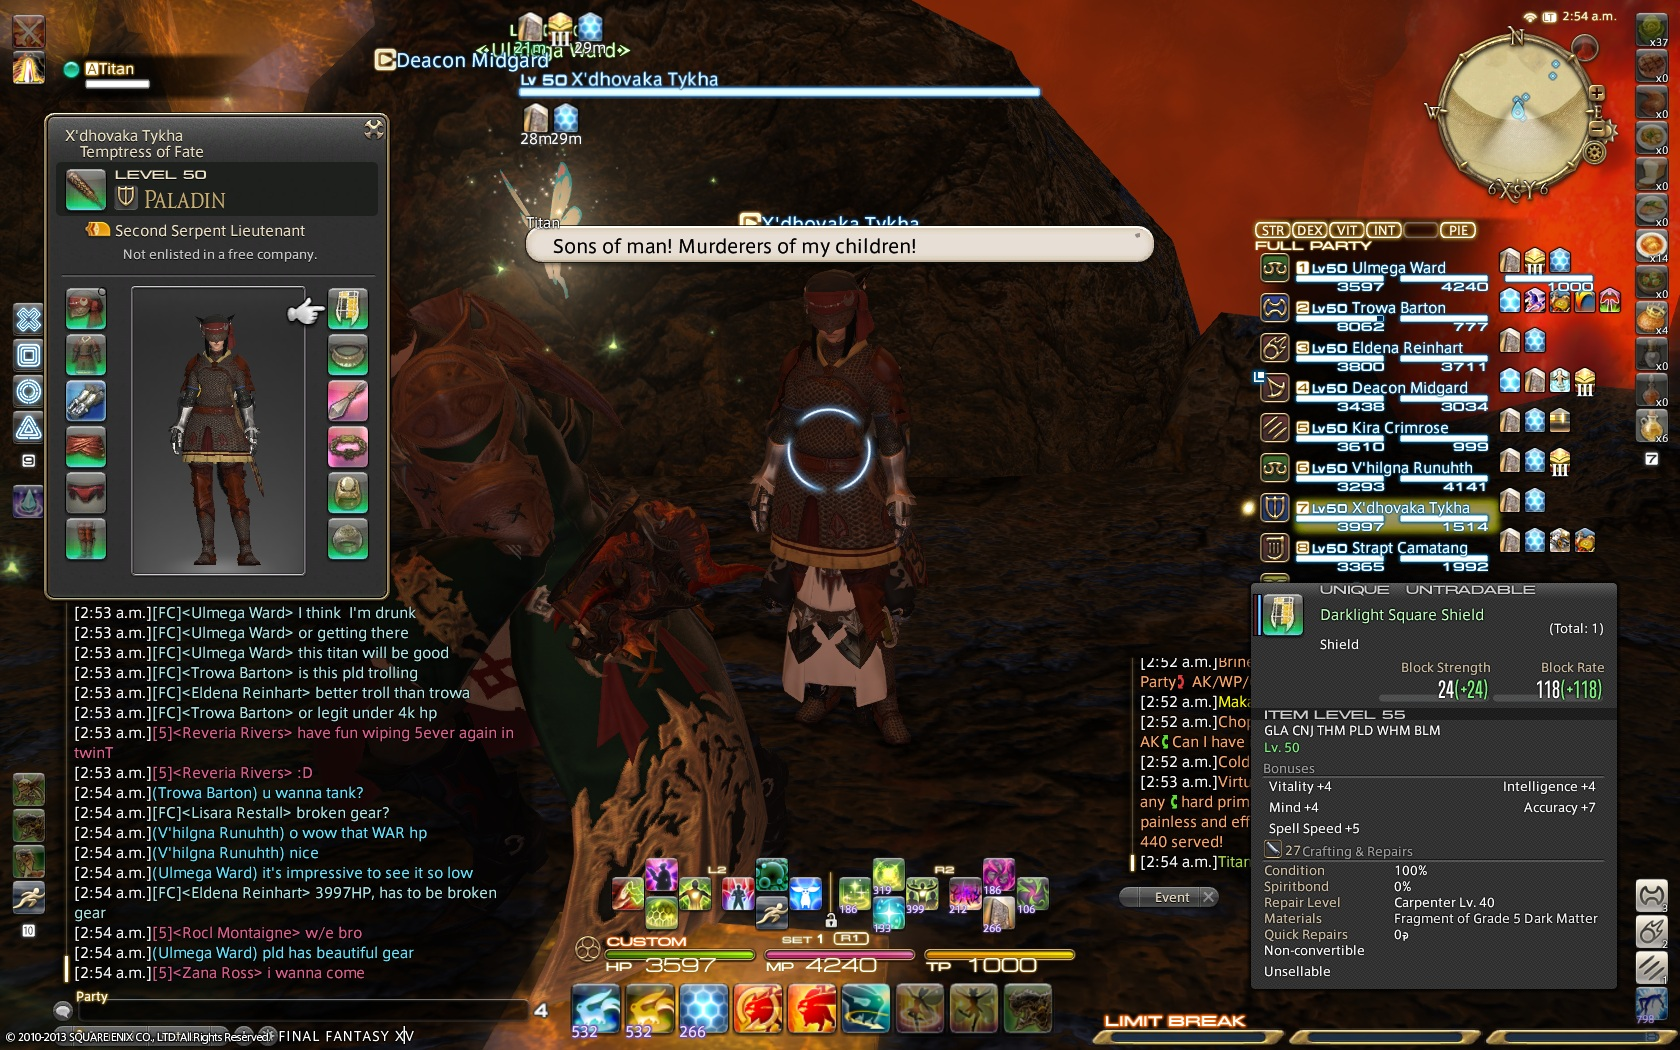 elcura ffxiv they duty that fail right unless enter away going gear chests some months raid when until anyway month feel like doesnt argument type replace still every give fucking time likely youre have which much since just been even released major something i340 hasnt this weight changes early into last tier